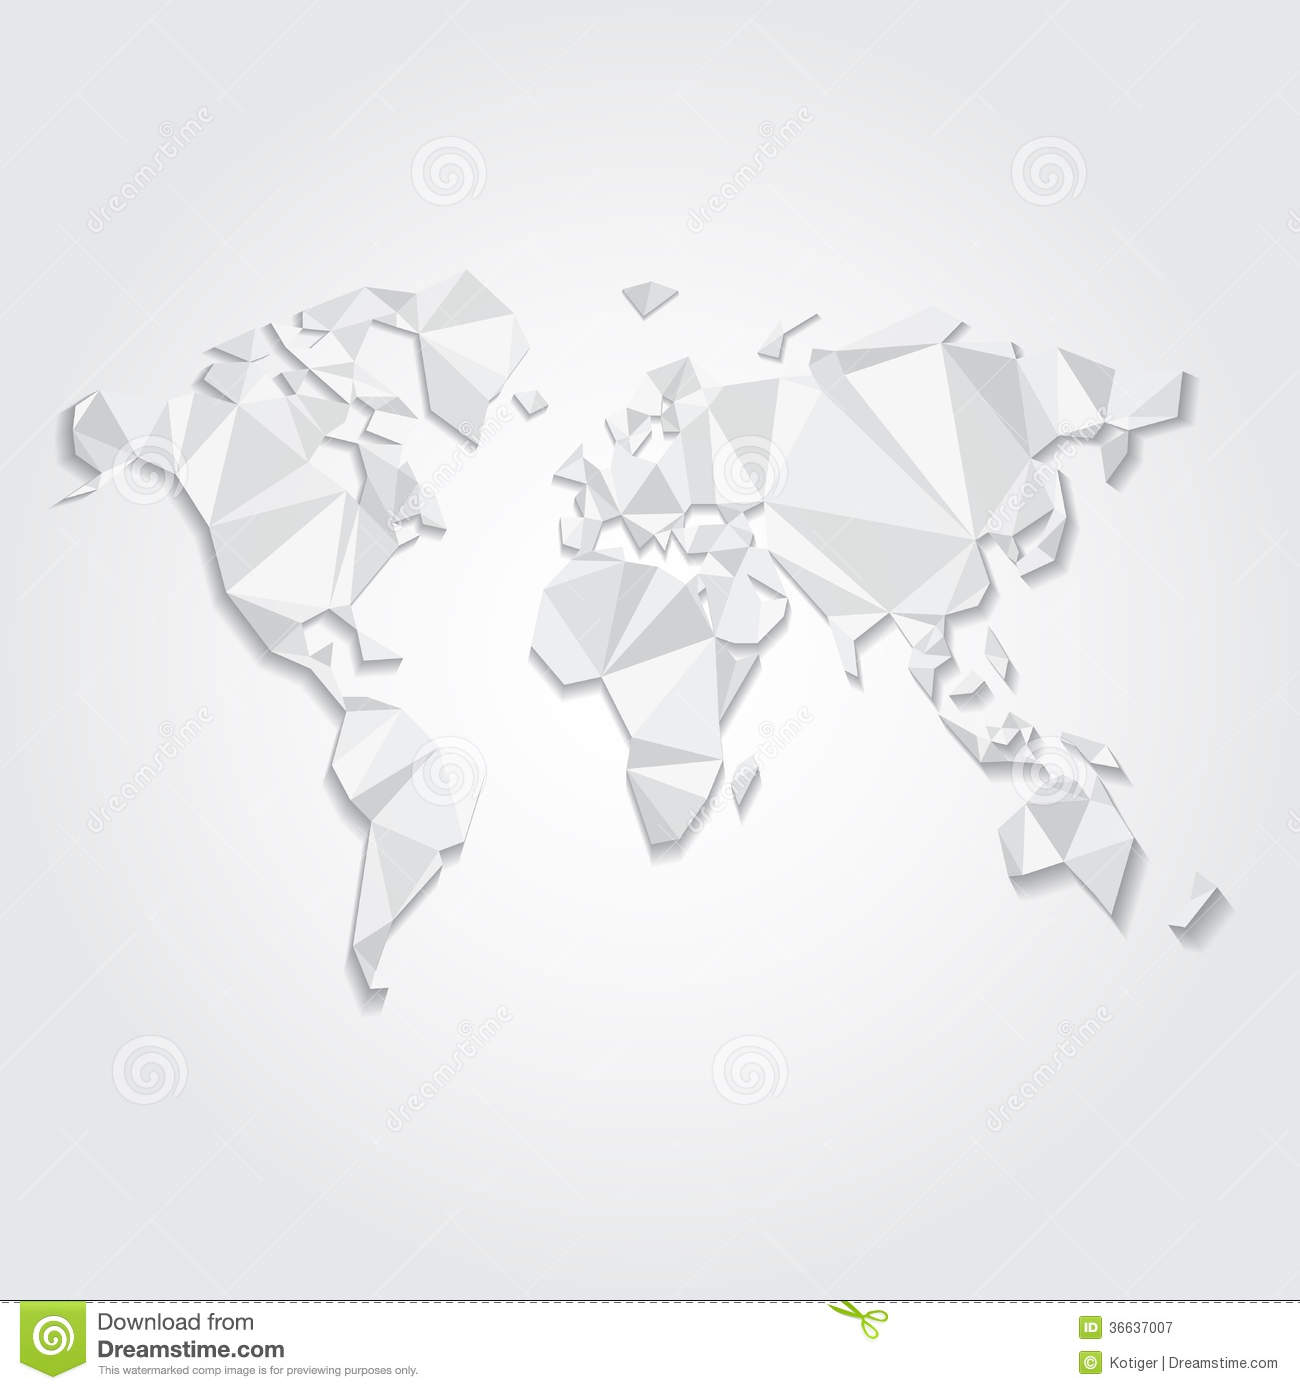 Triangular world map vector file stock vector illustration of download comp gumiabroncs Image collections